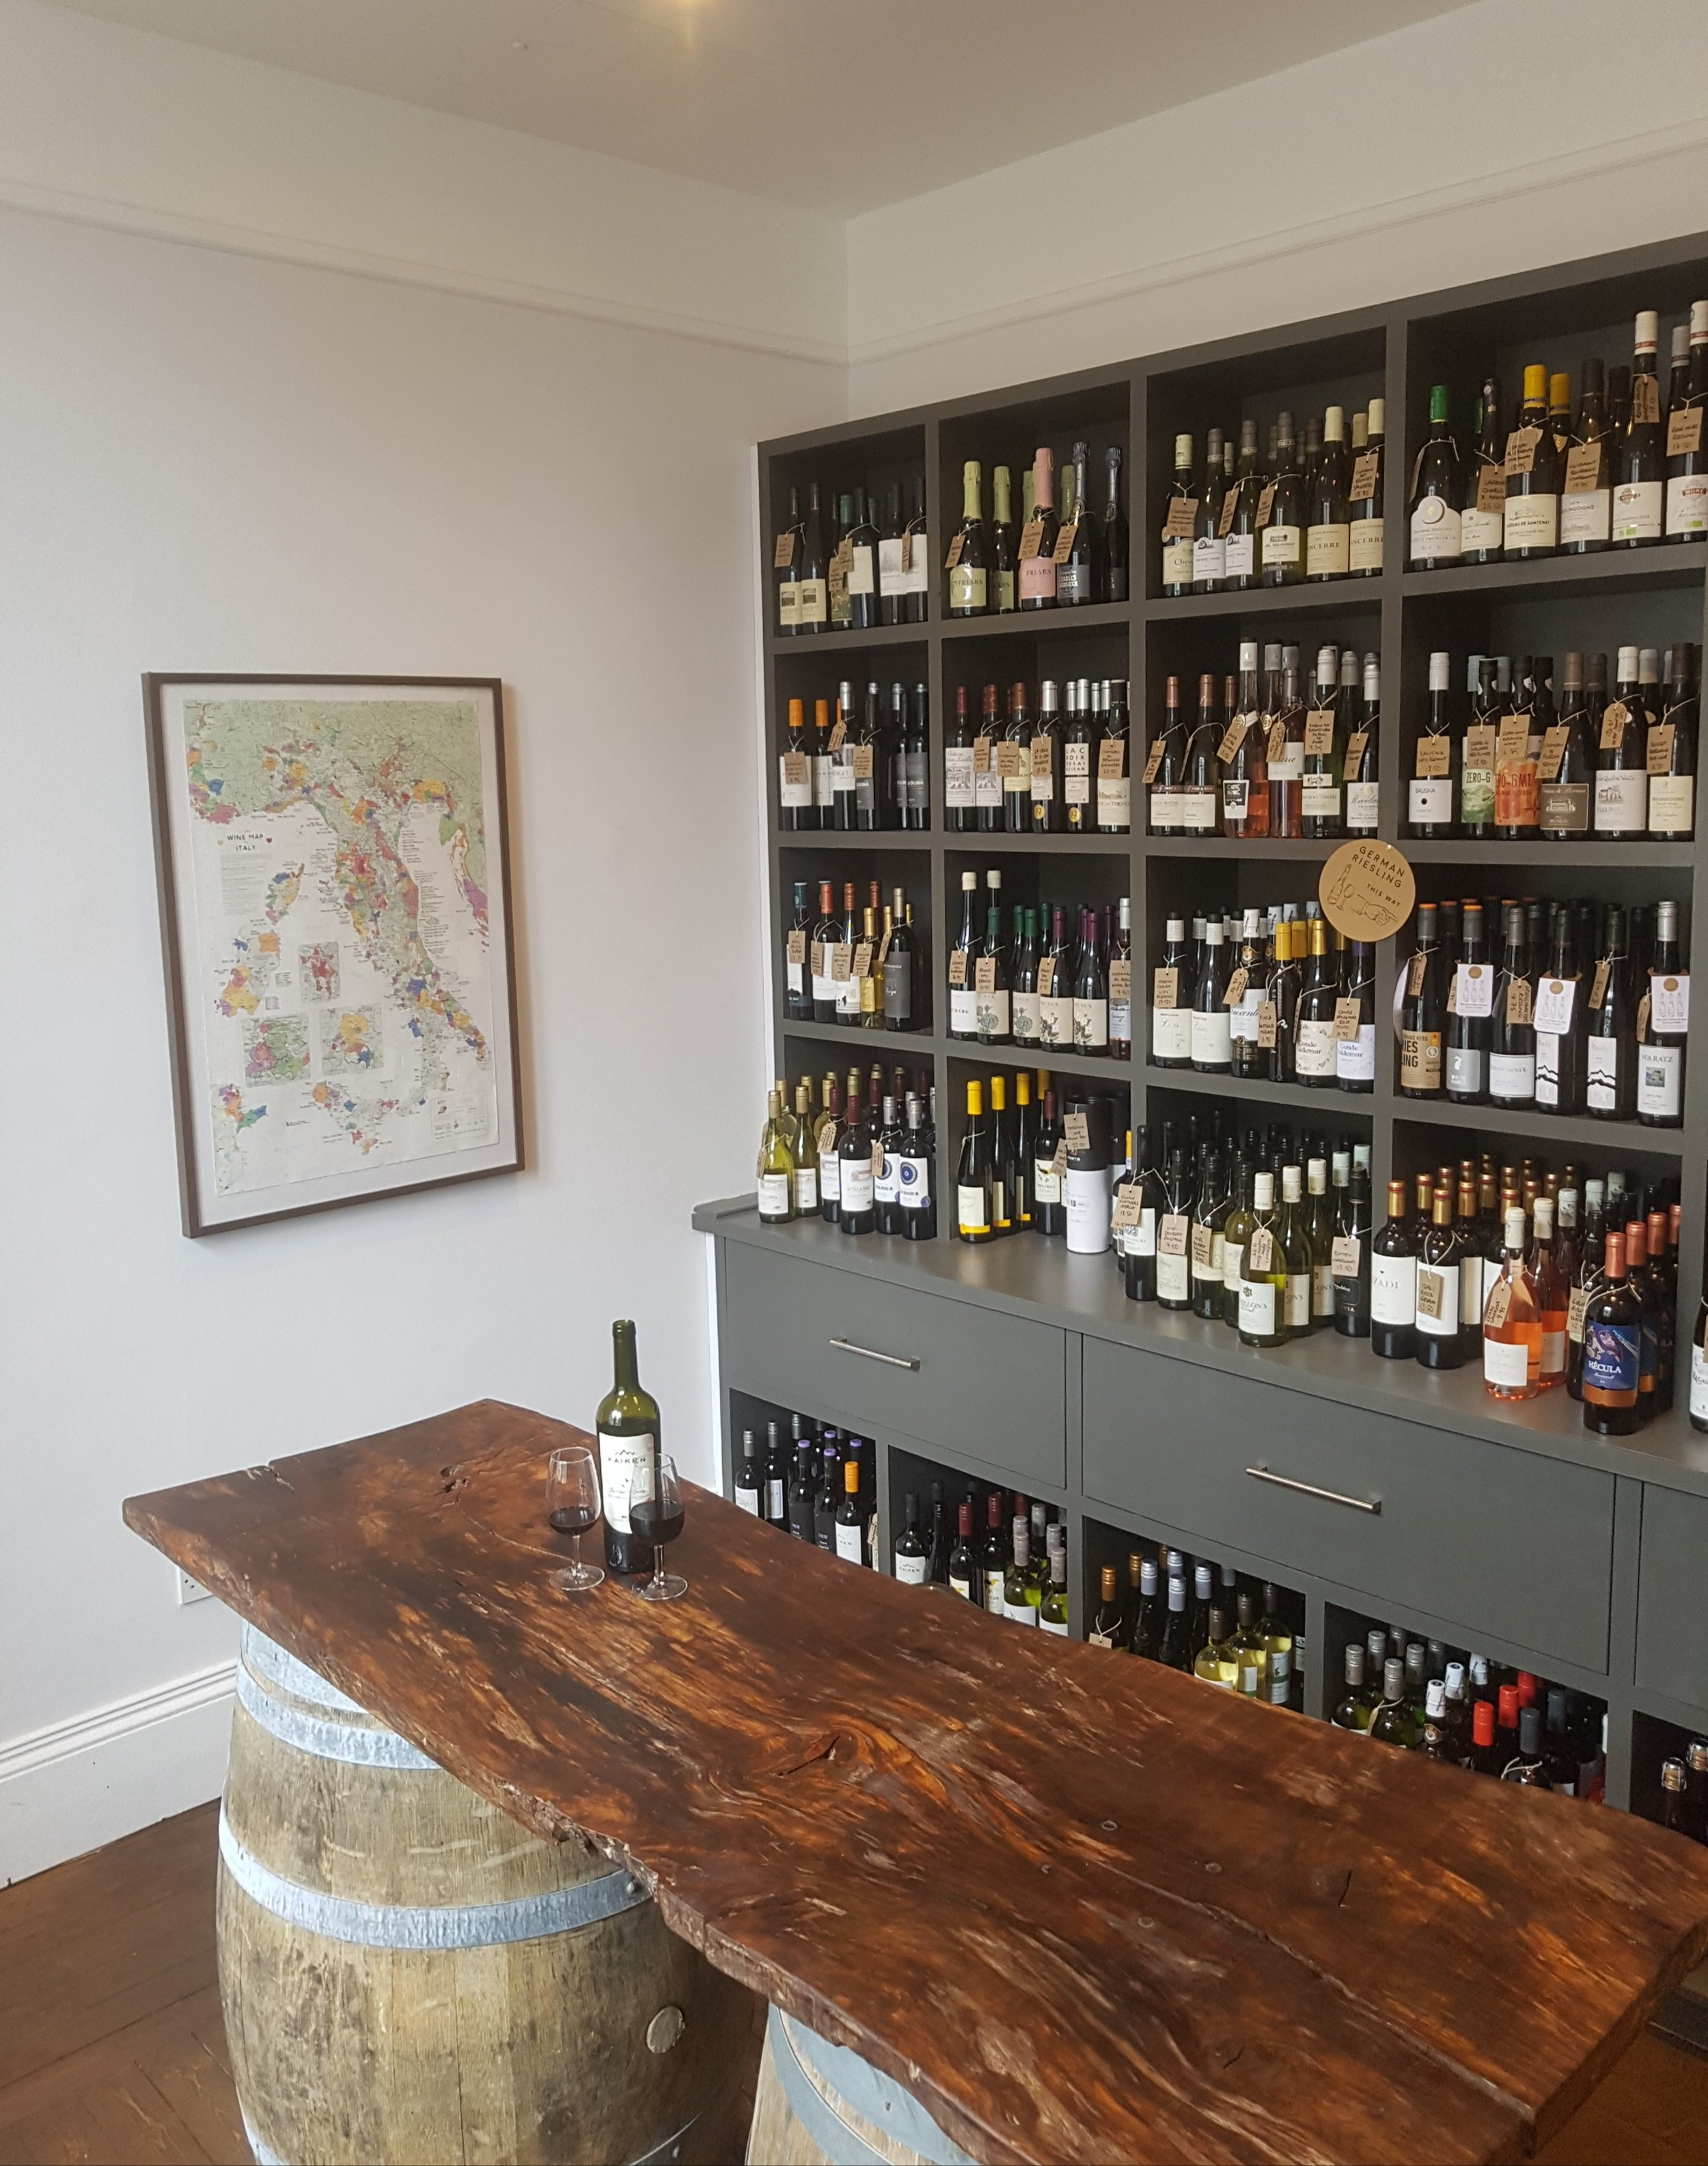 A SELECTION OF 'MUST TRY' WINES, BEERS & SPIRITS  -  Retail.Wholesale.Tastings.